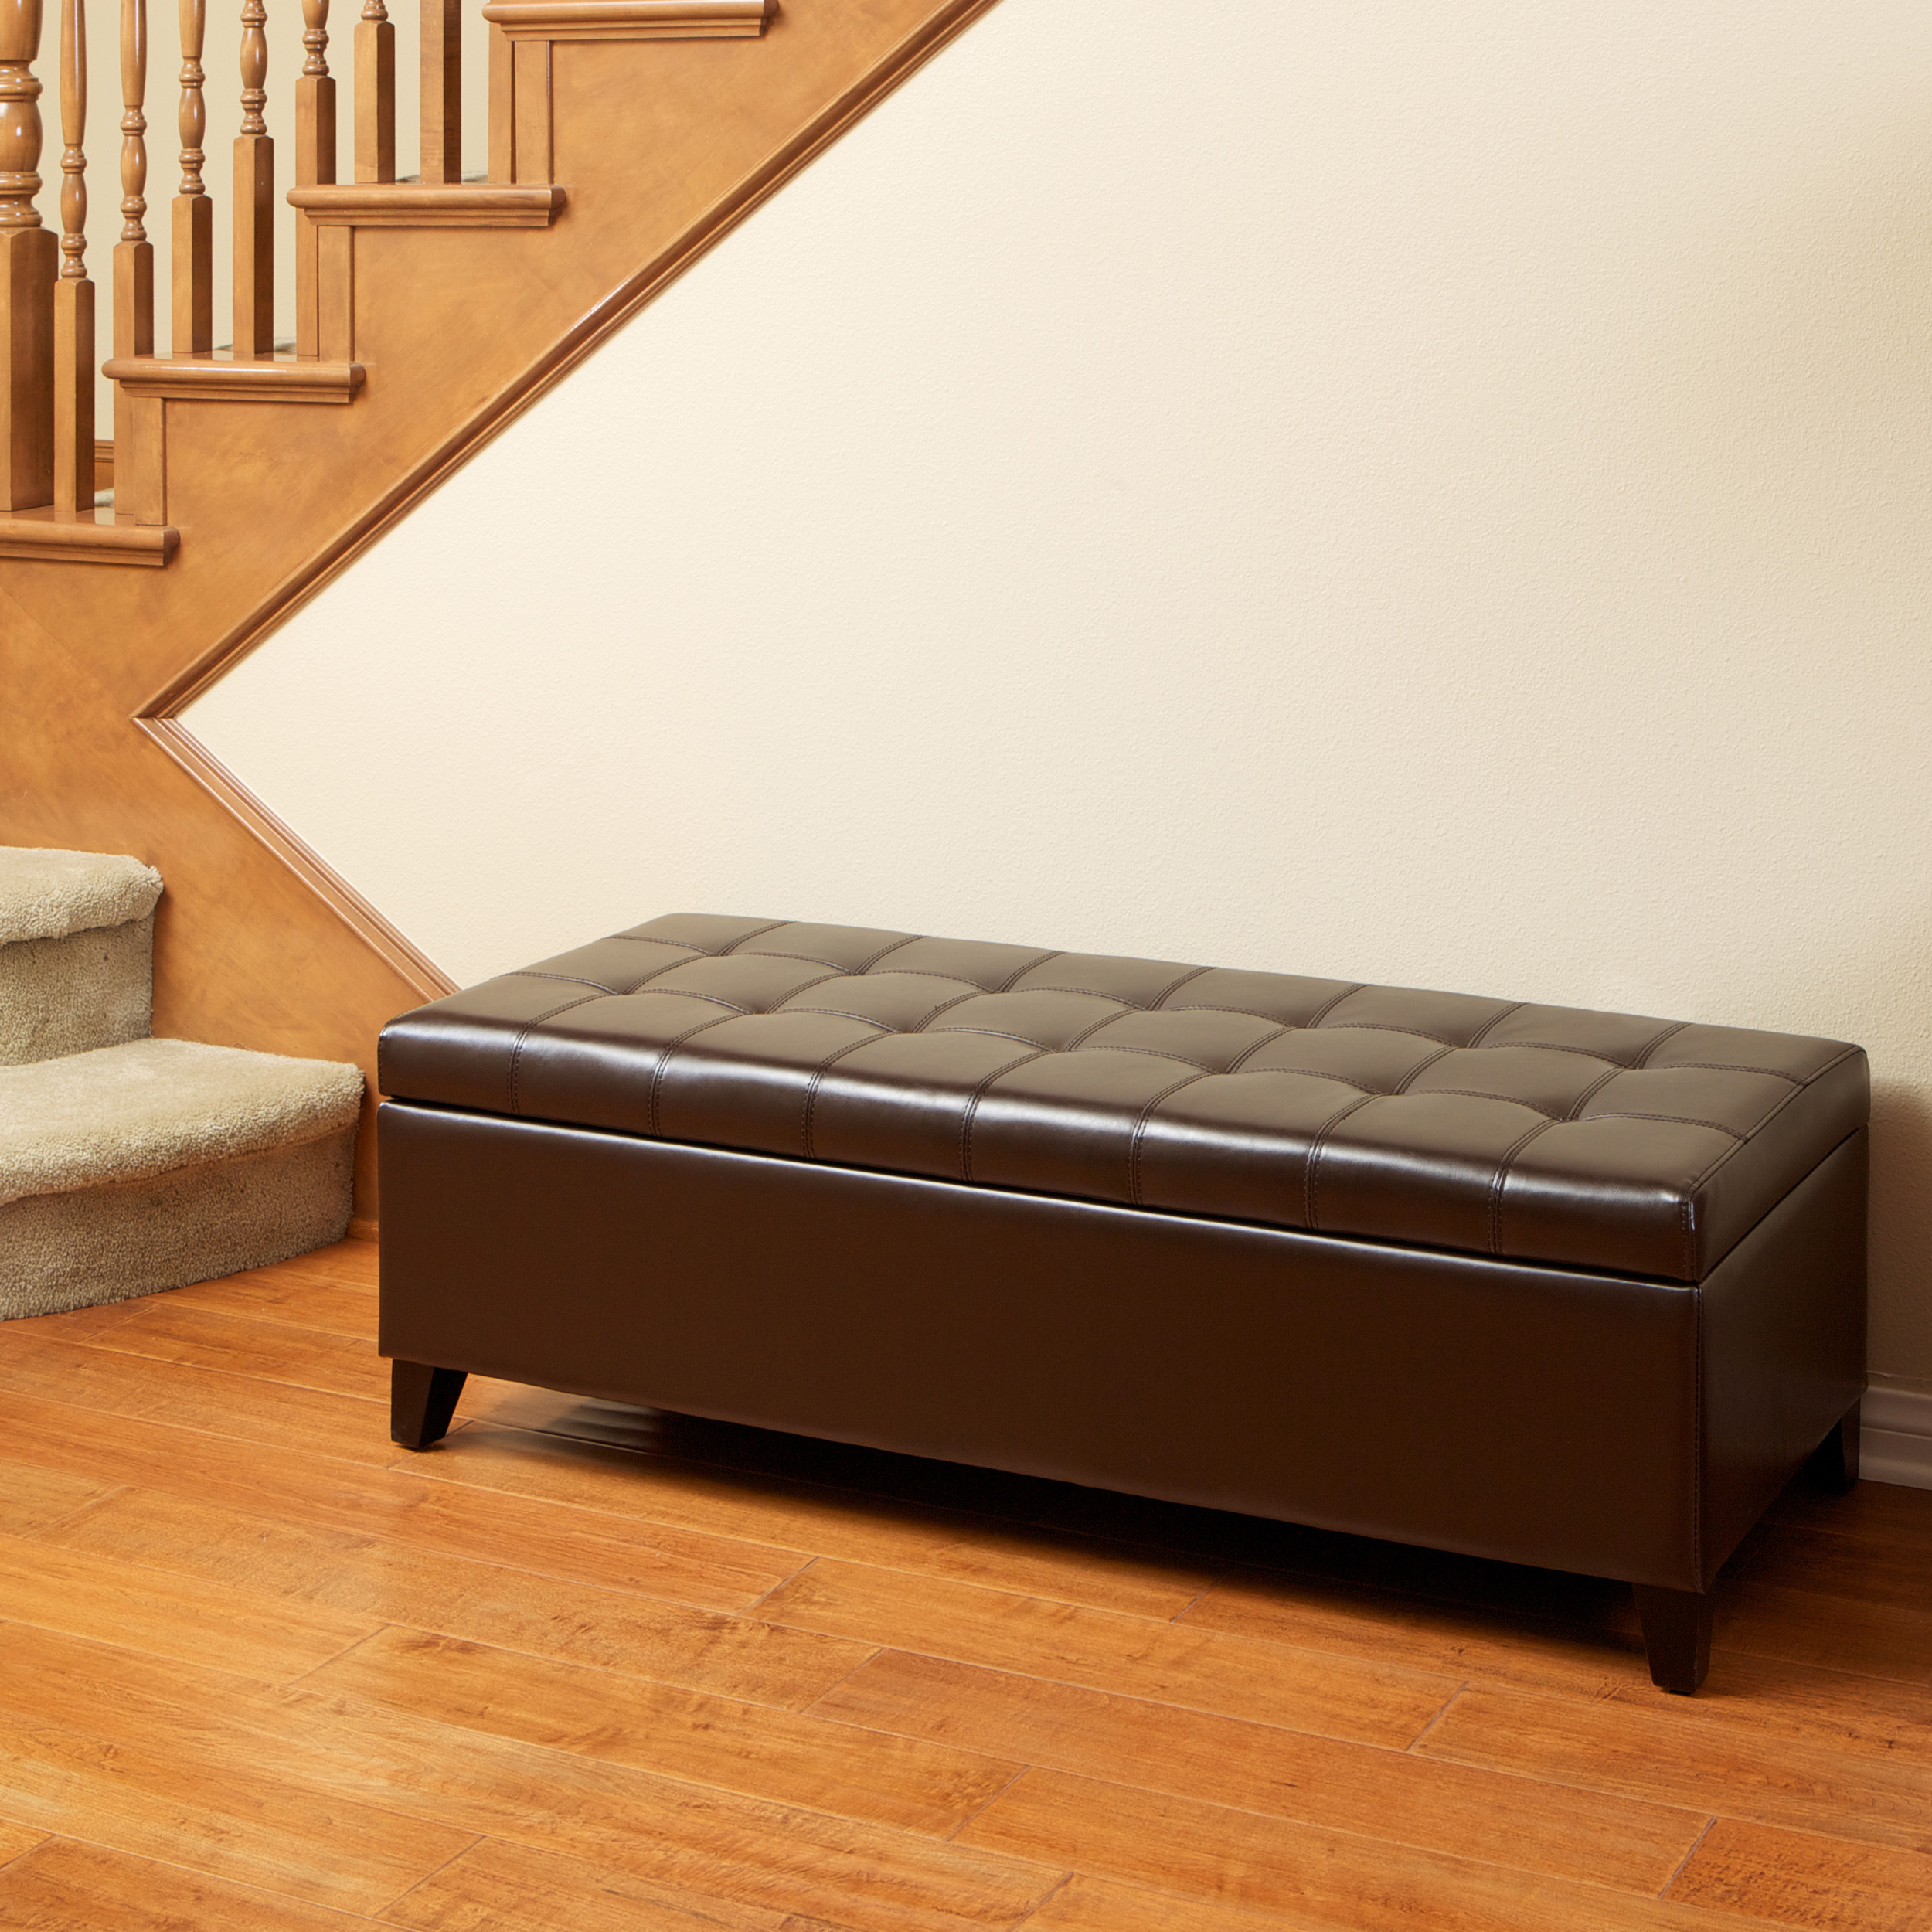 Noble House Logan Brown Tufted Bonded Leather Ottoman Storage Bench